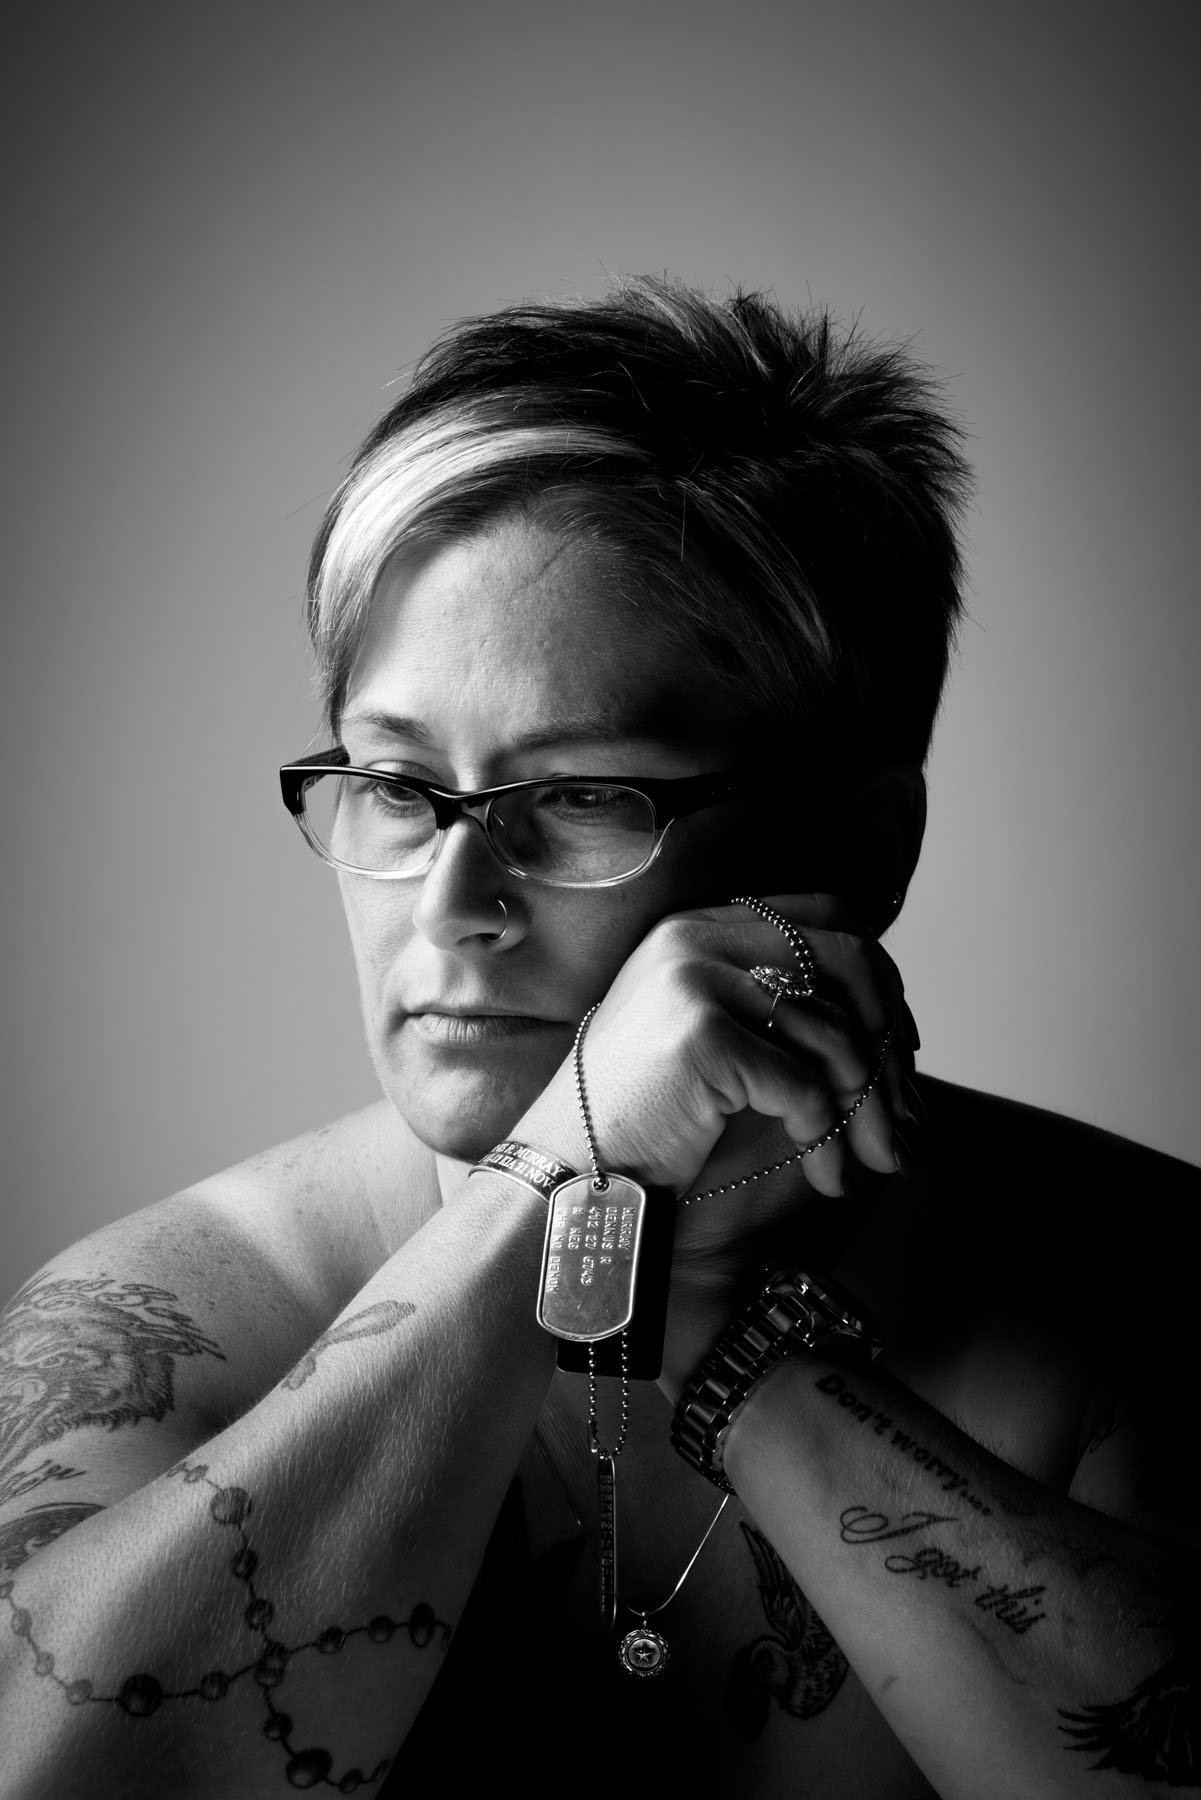 Veterans Portrait Project: Shelee Murray, photo by: Stacy L. Pearsall